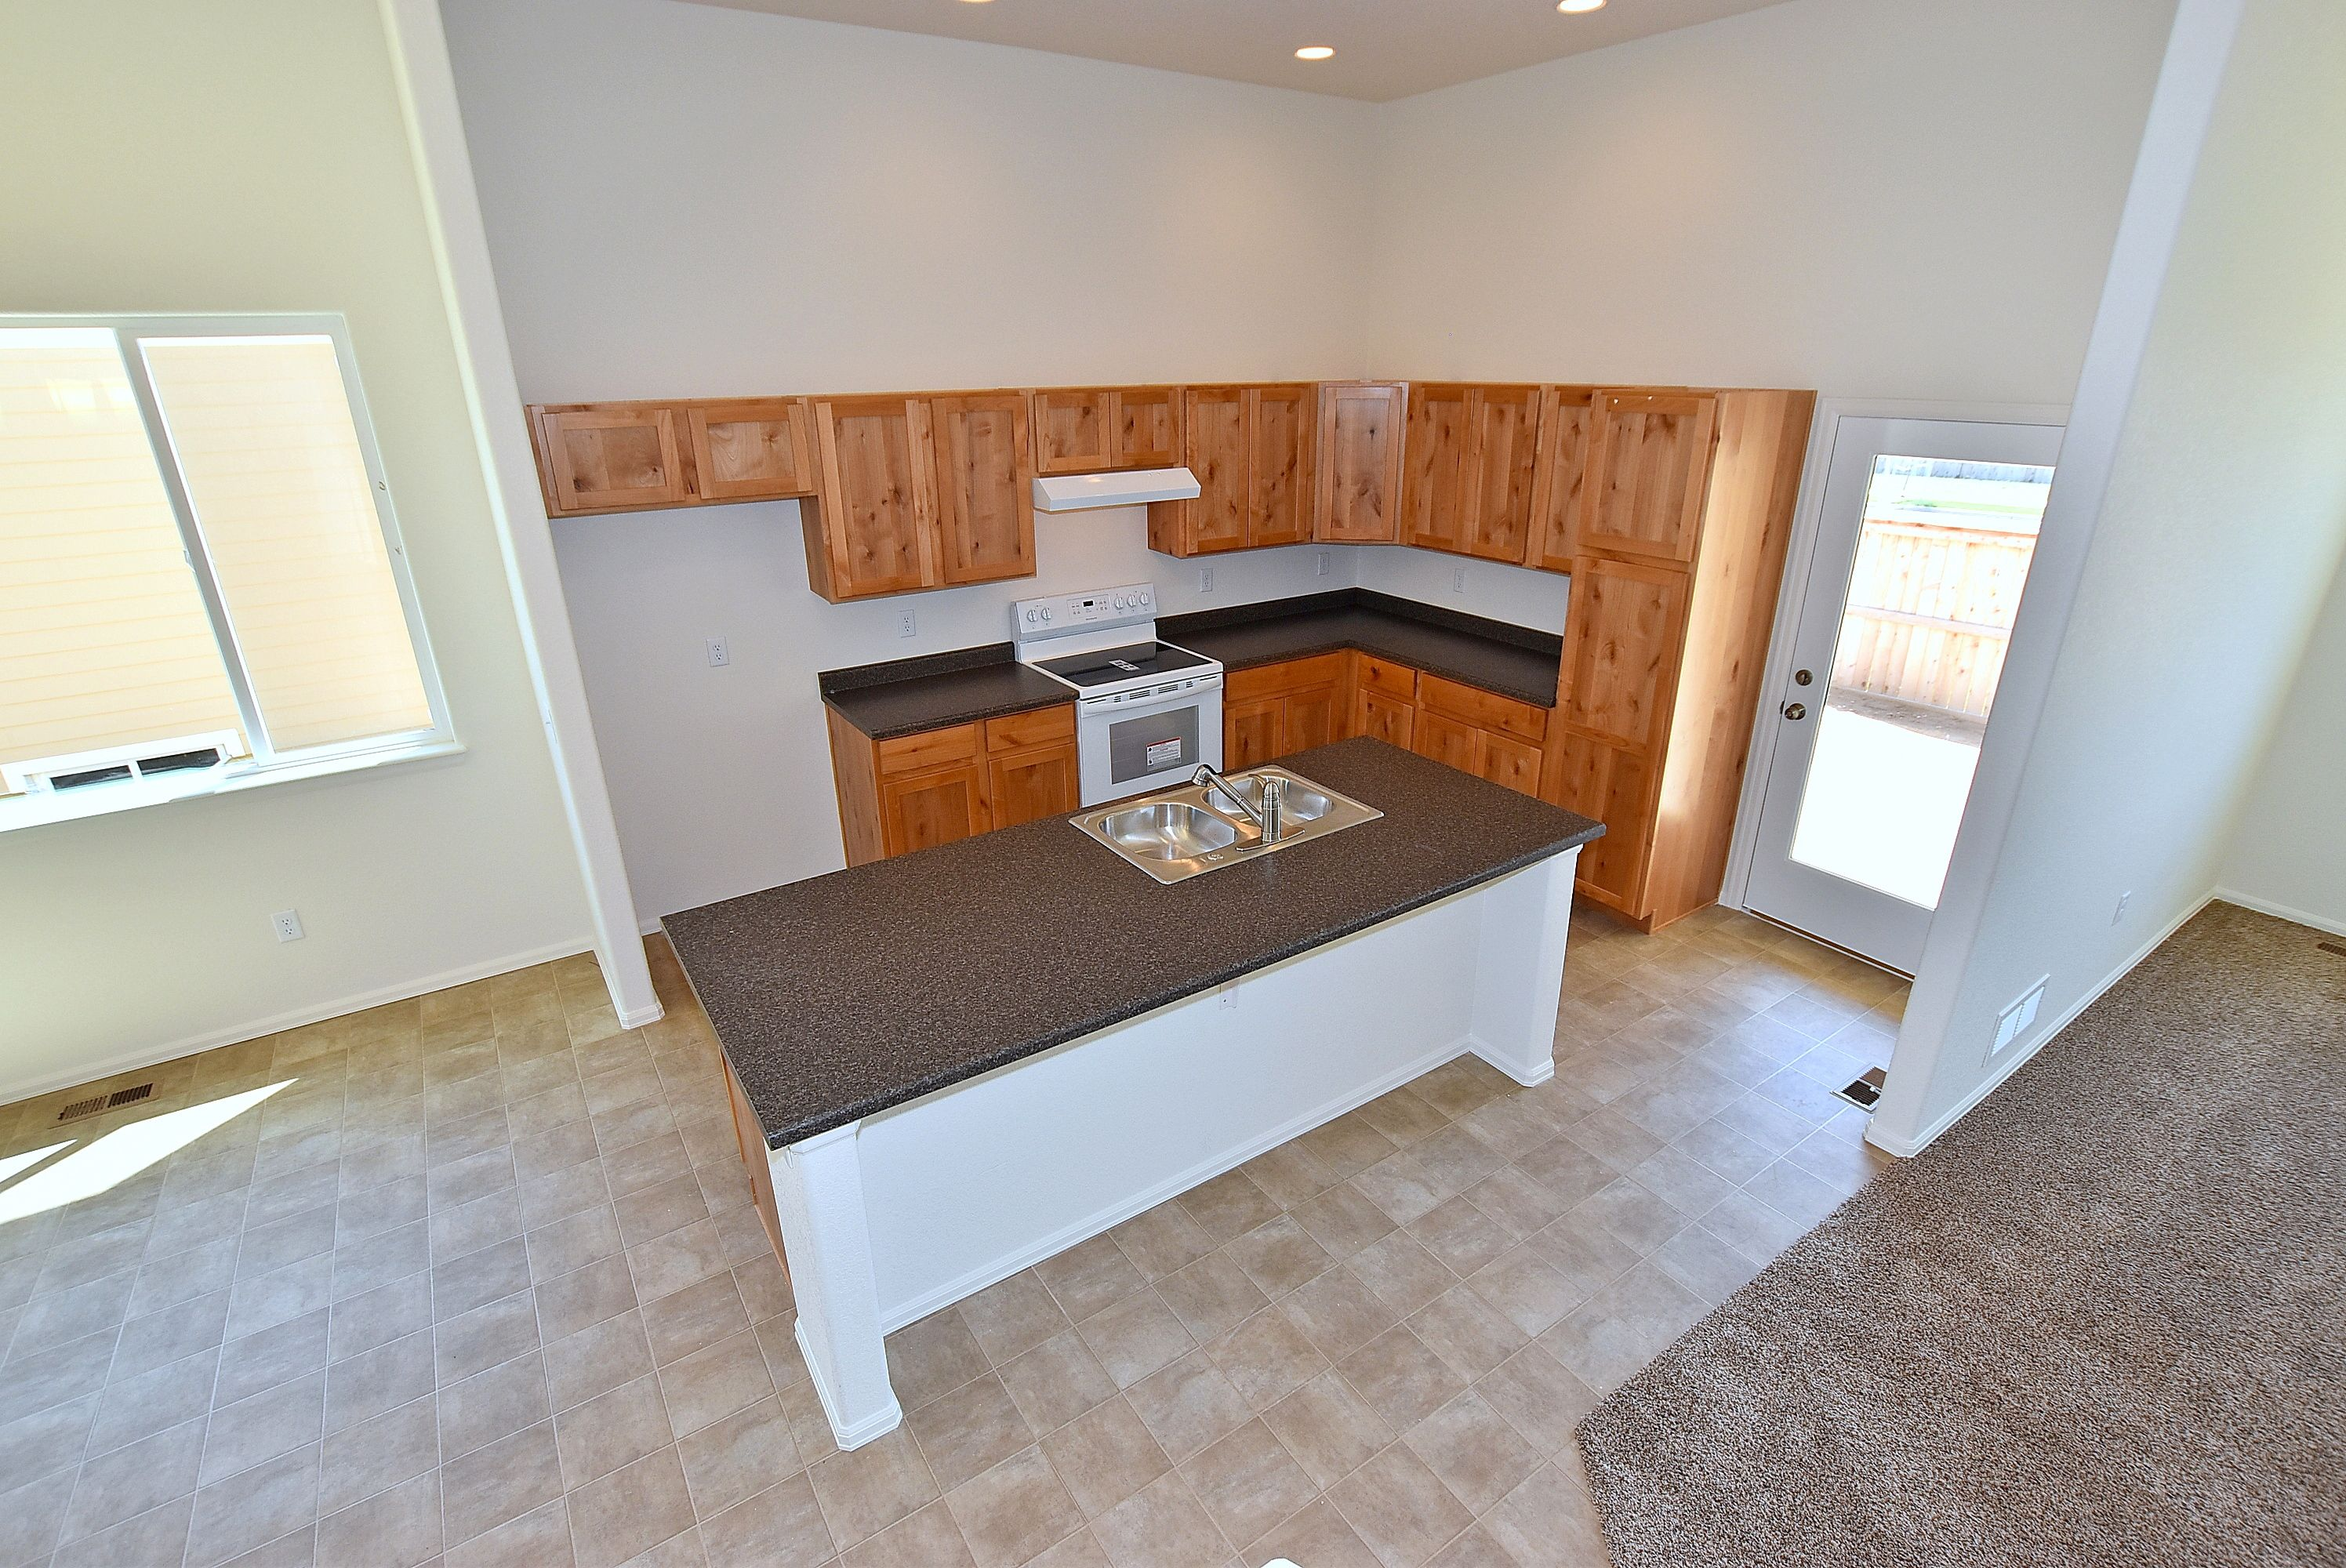 Kitchen featured in the Maryland By Journey Homes in Greeley, CO